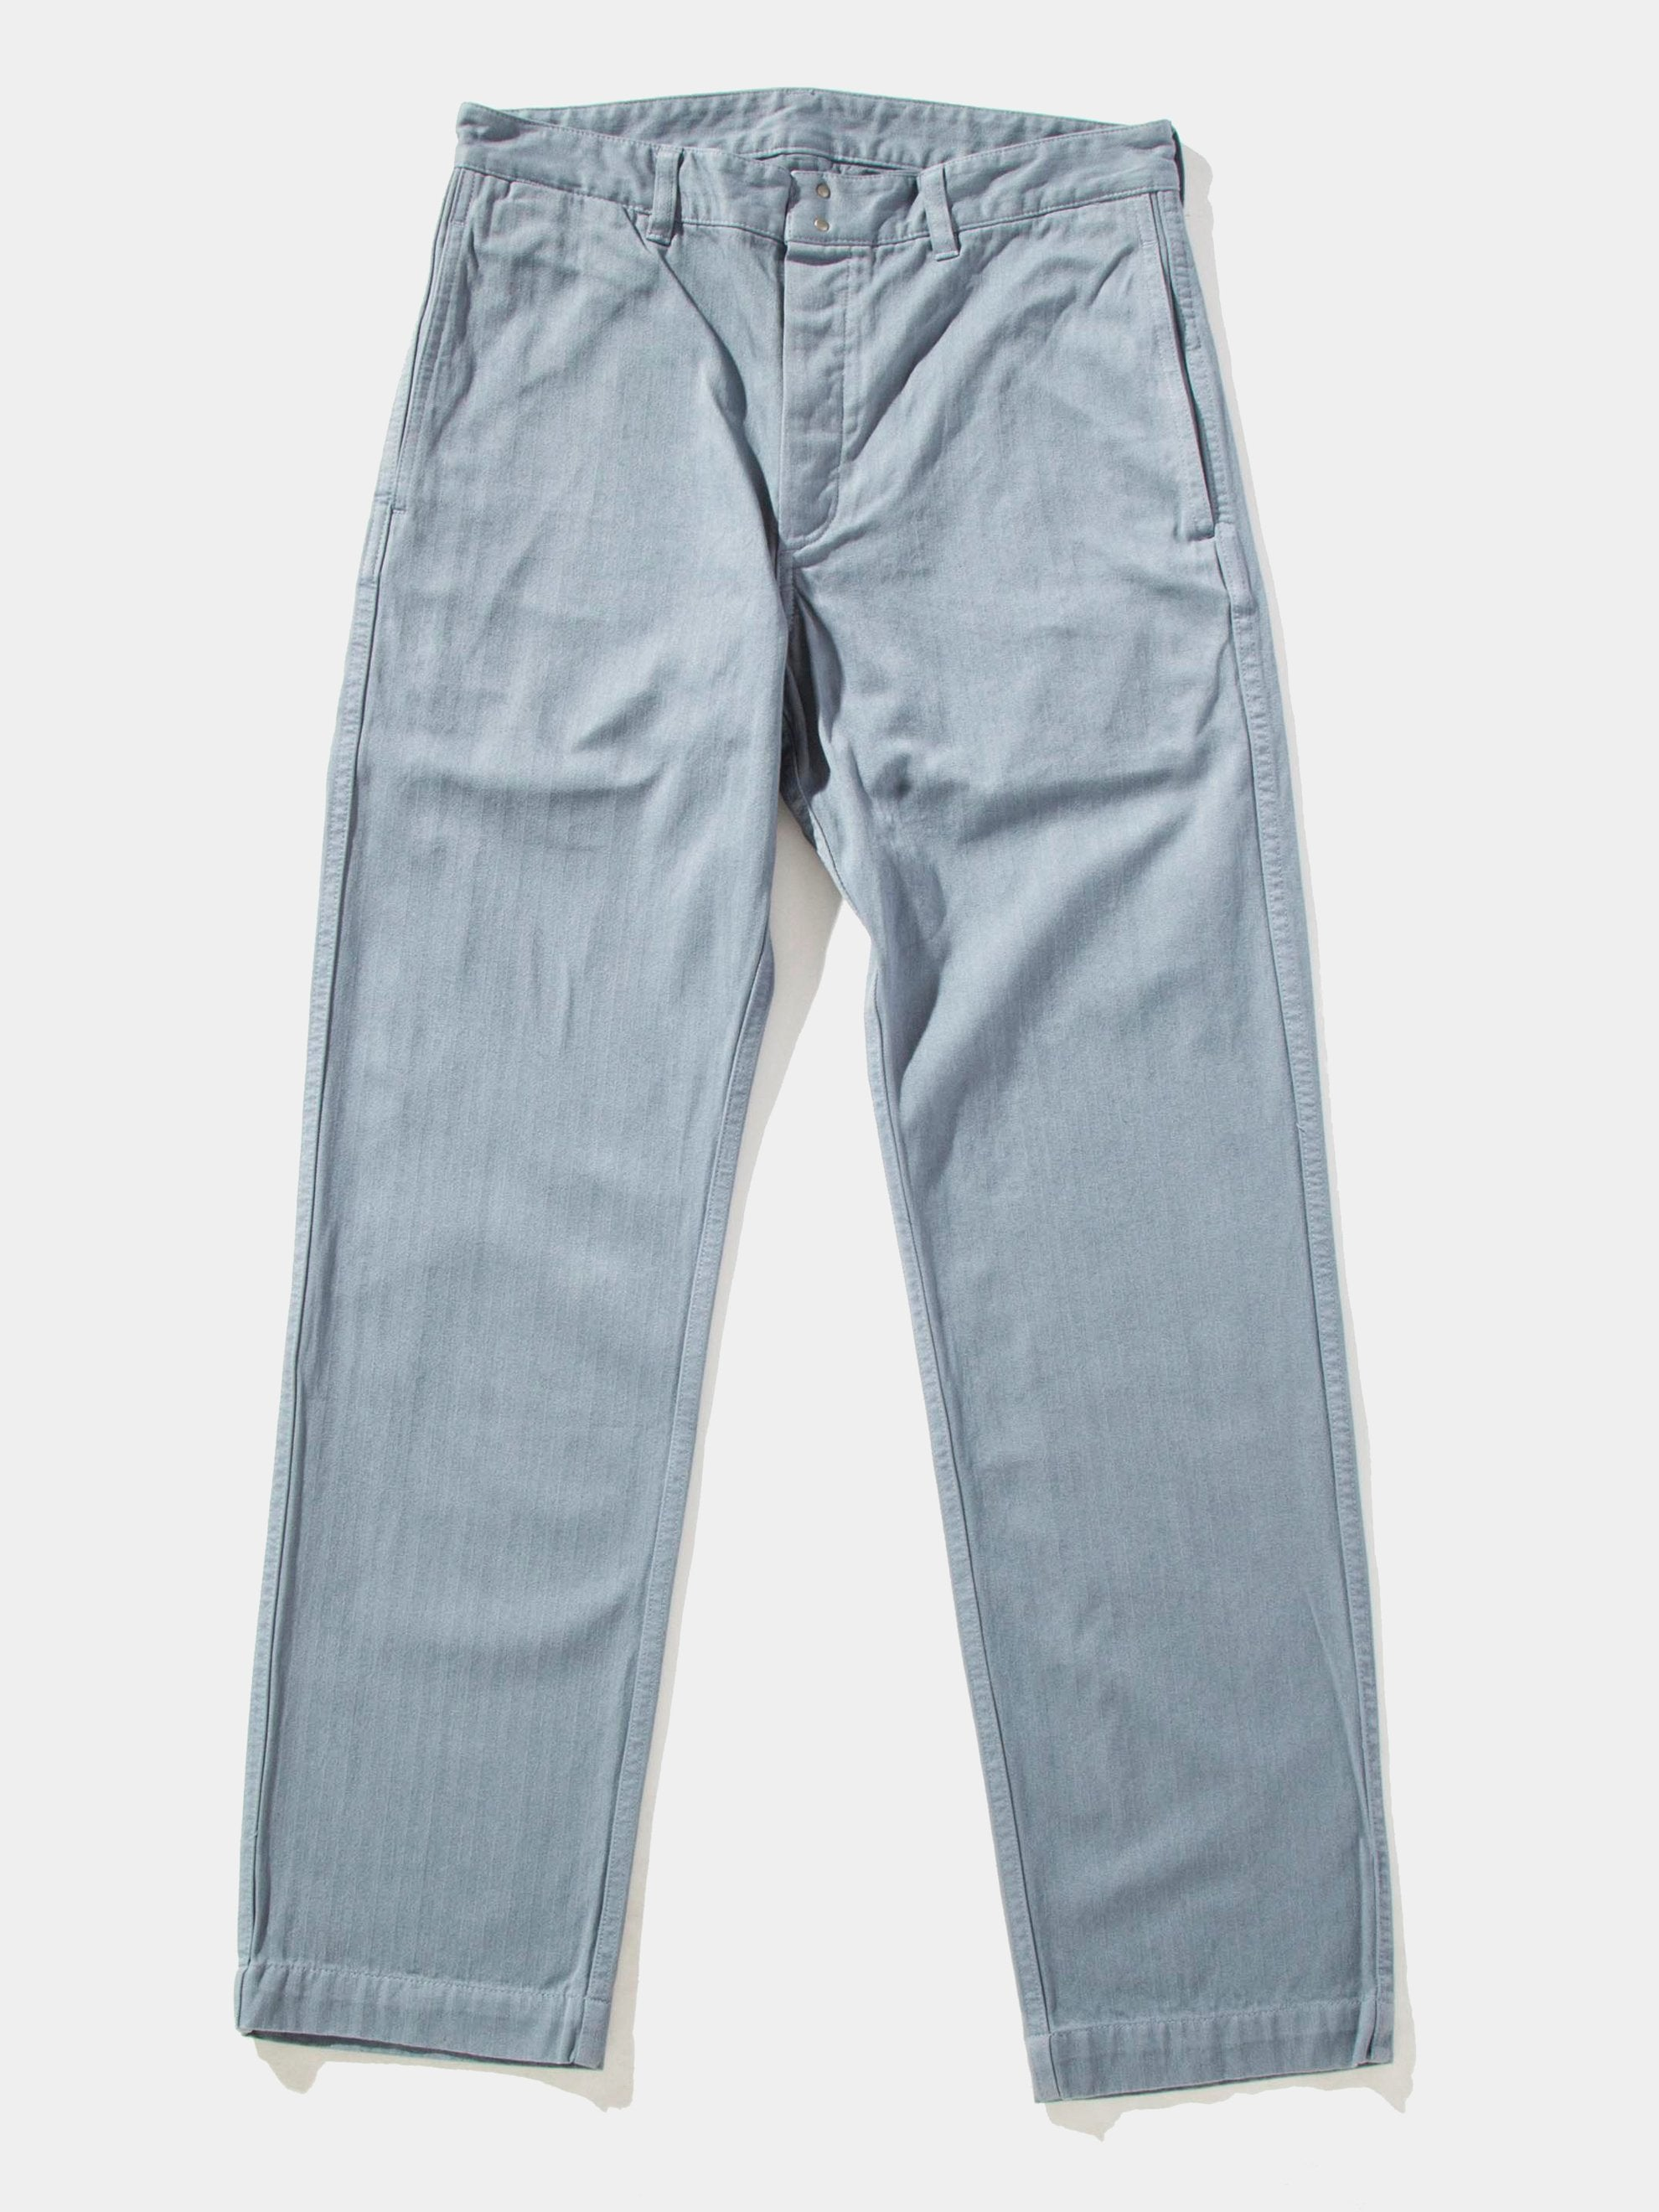 Grey Pastoral Pants Herringbone 1